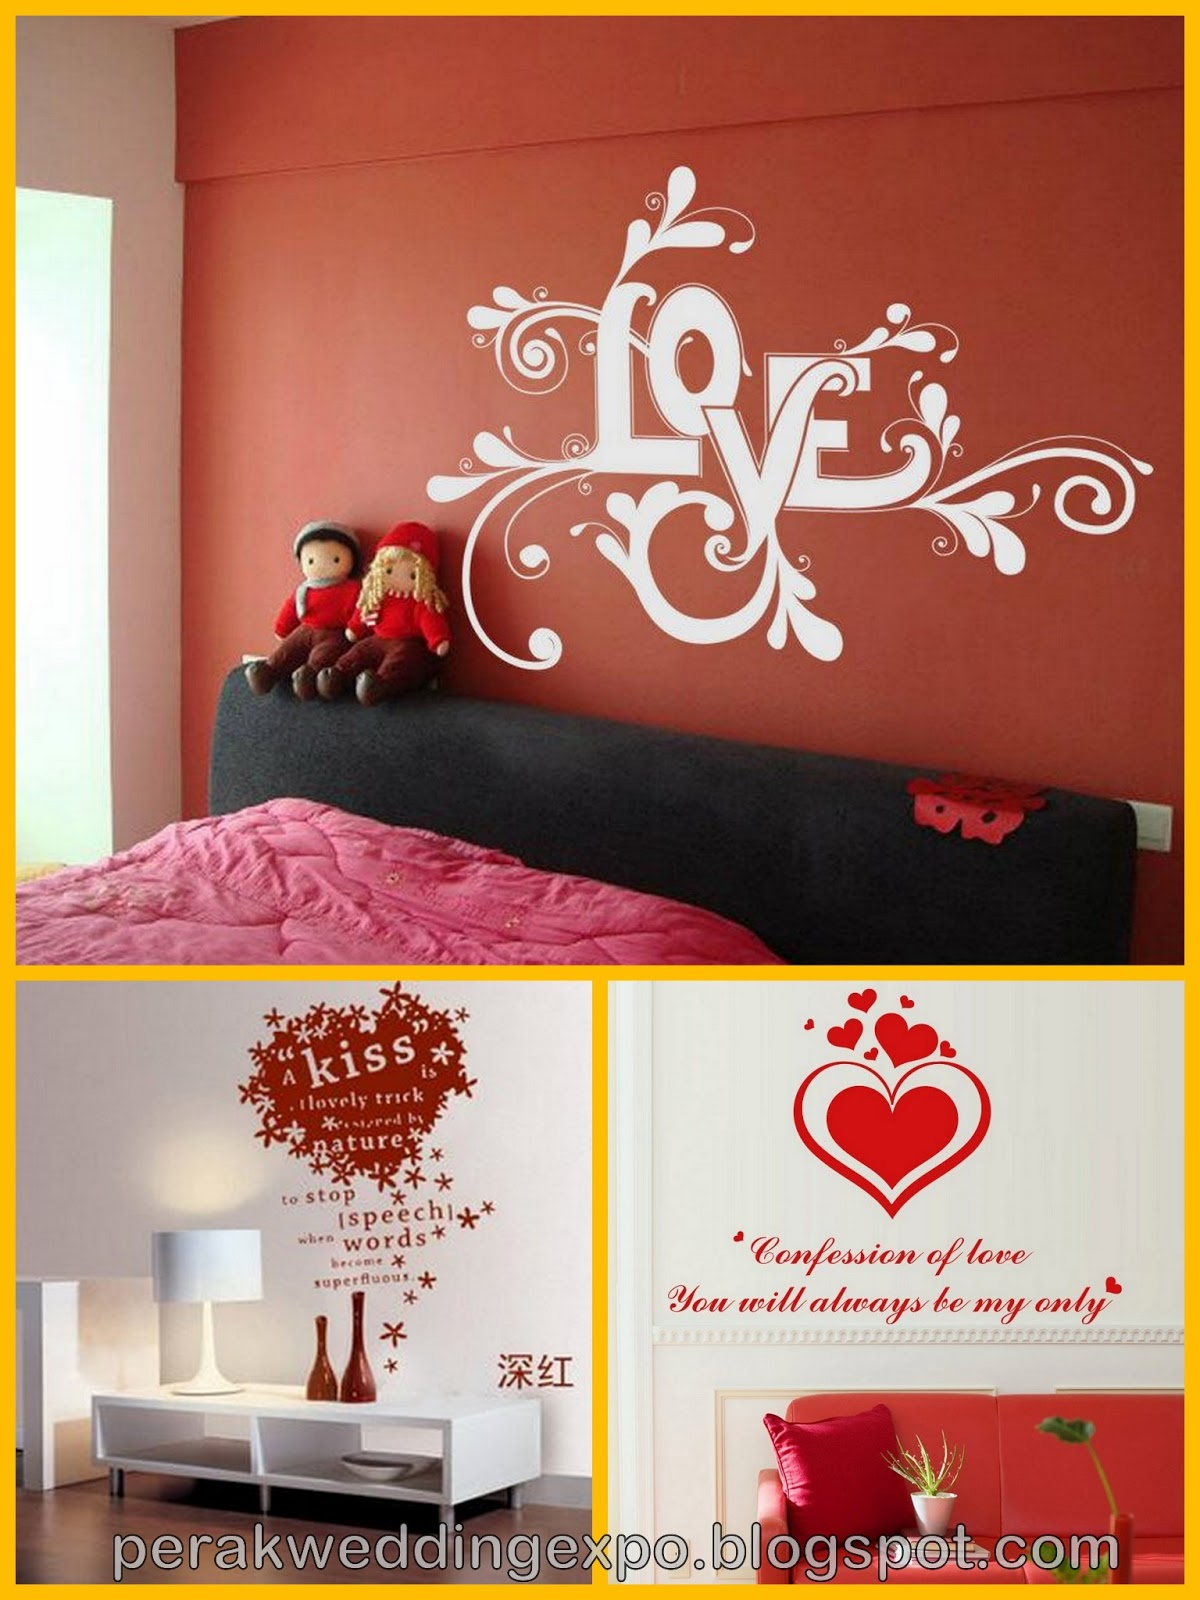 Epic Wall Stickers in stock items available custom made orders accepted